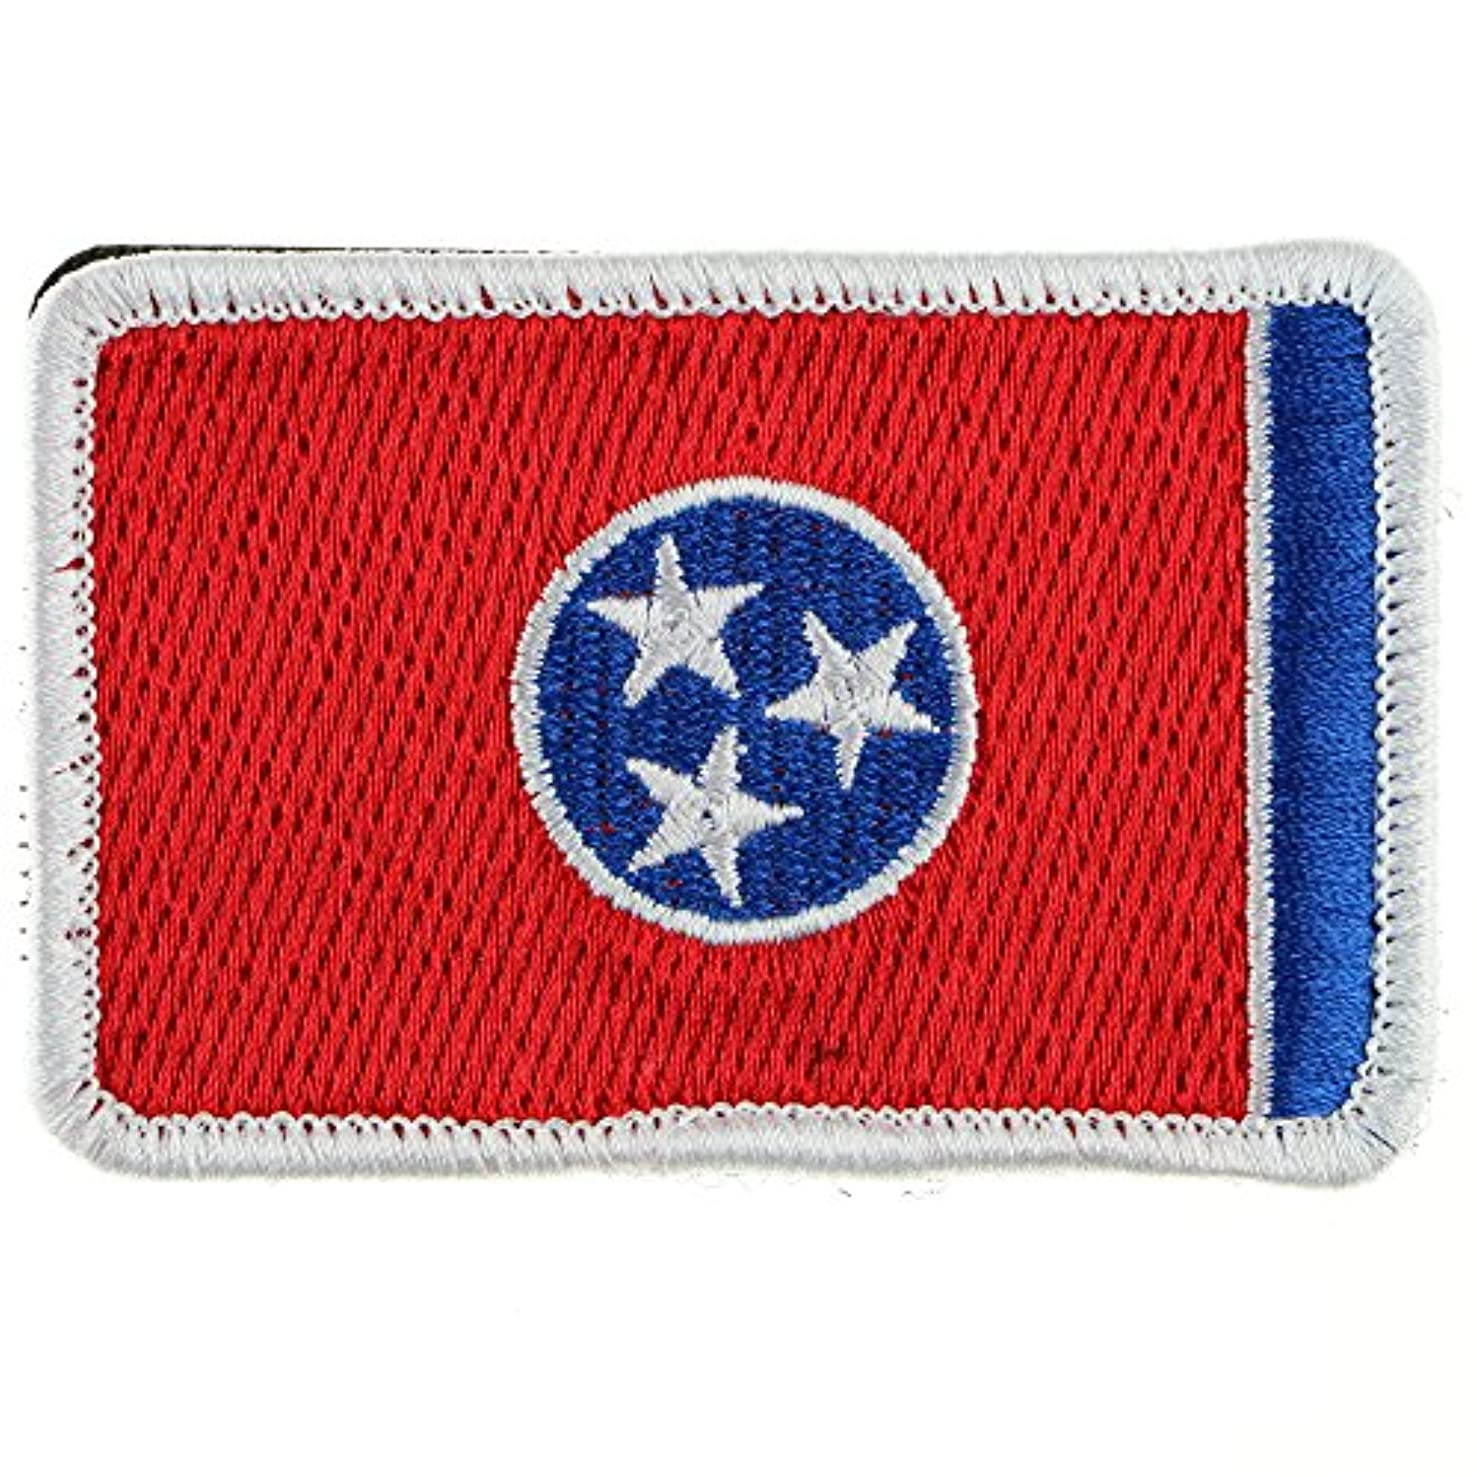 LiZMS Tactical Patch : Tennessee Flag - Hook and Loop Fasteners